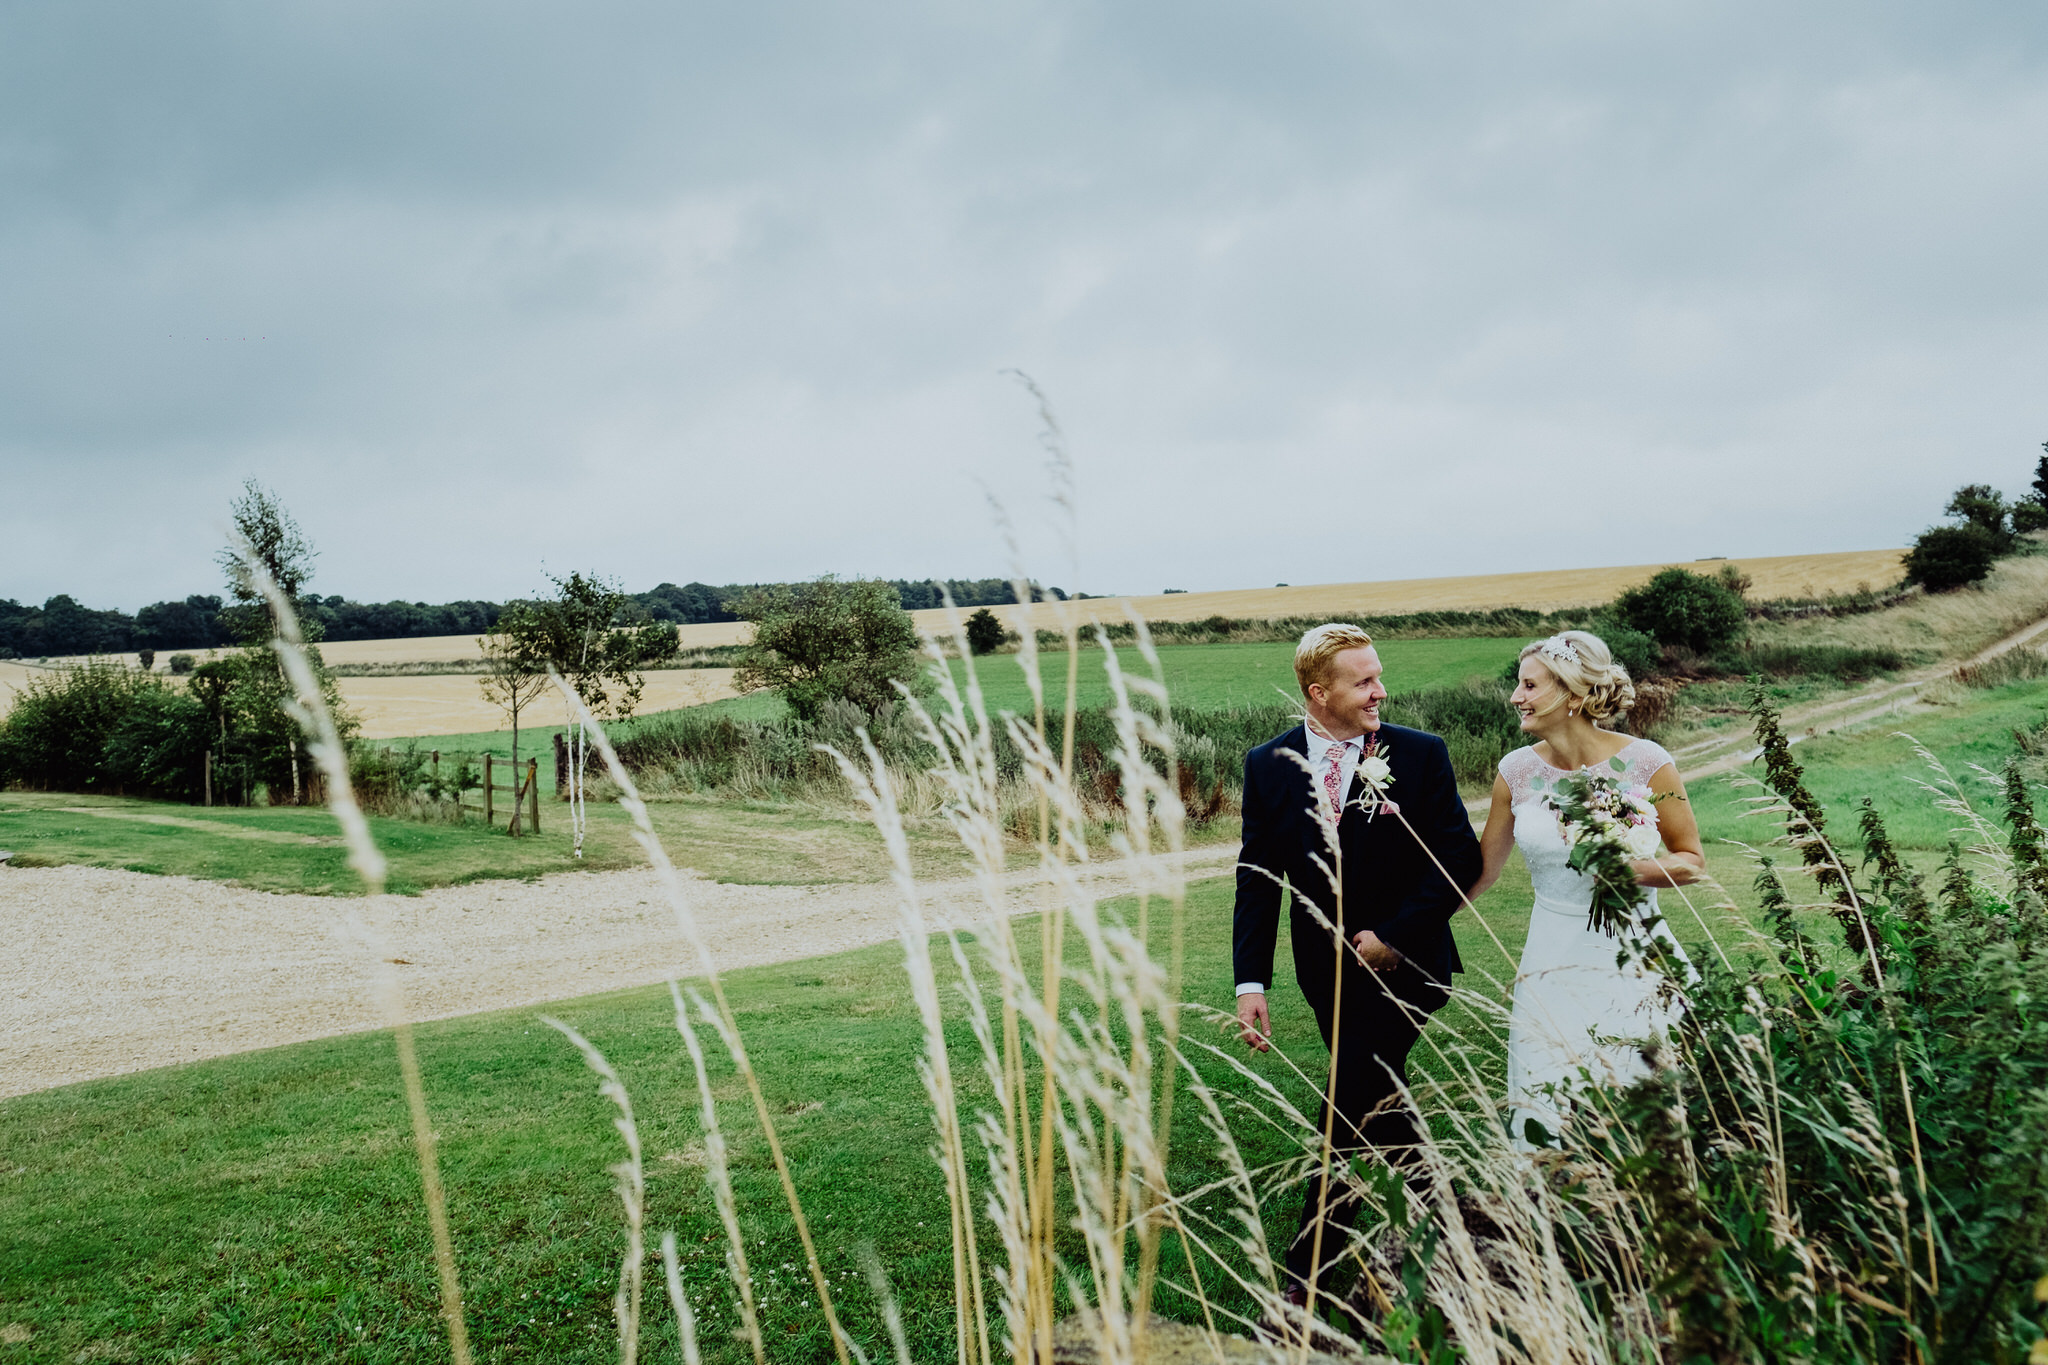 A bride and groom at a wedding at Cripps Stone Barn, Cheltenham, Gloucestershire.